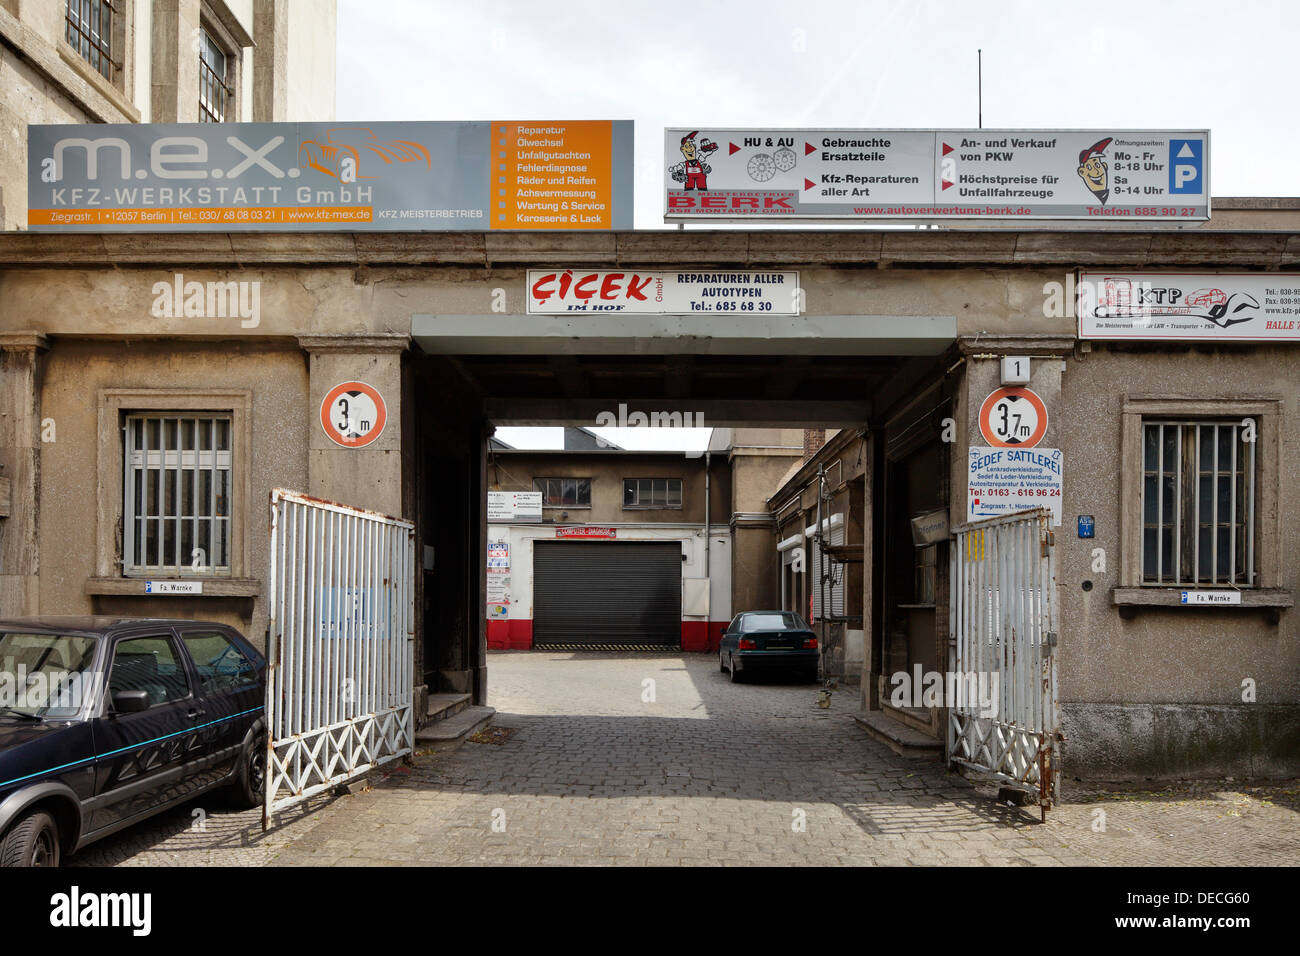 Gewerbehof Berlin Driveway Gate Germany Stock Photos And Driveway Gate Germany